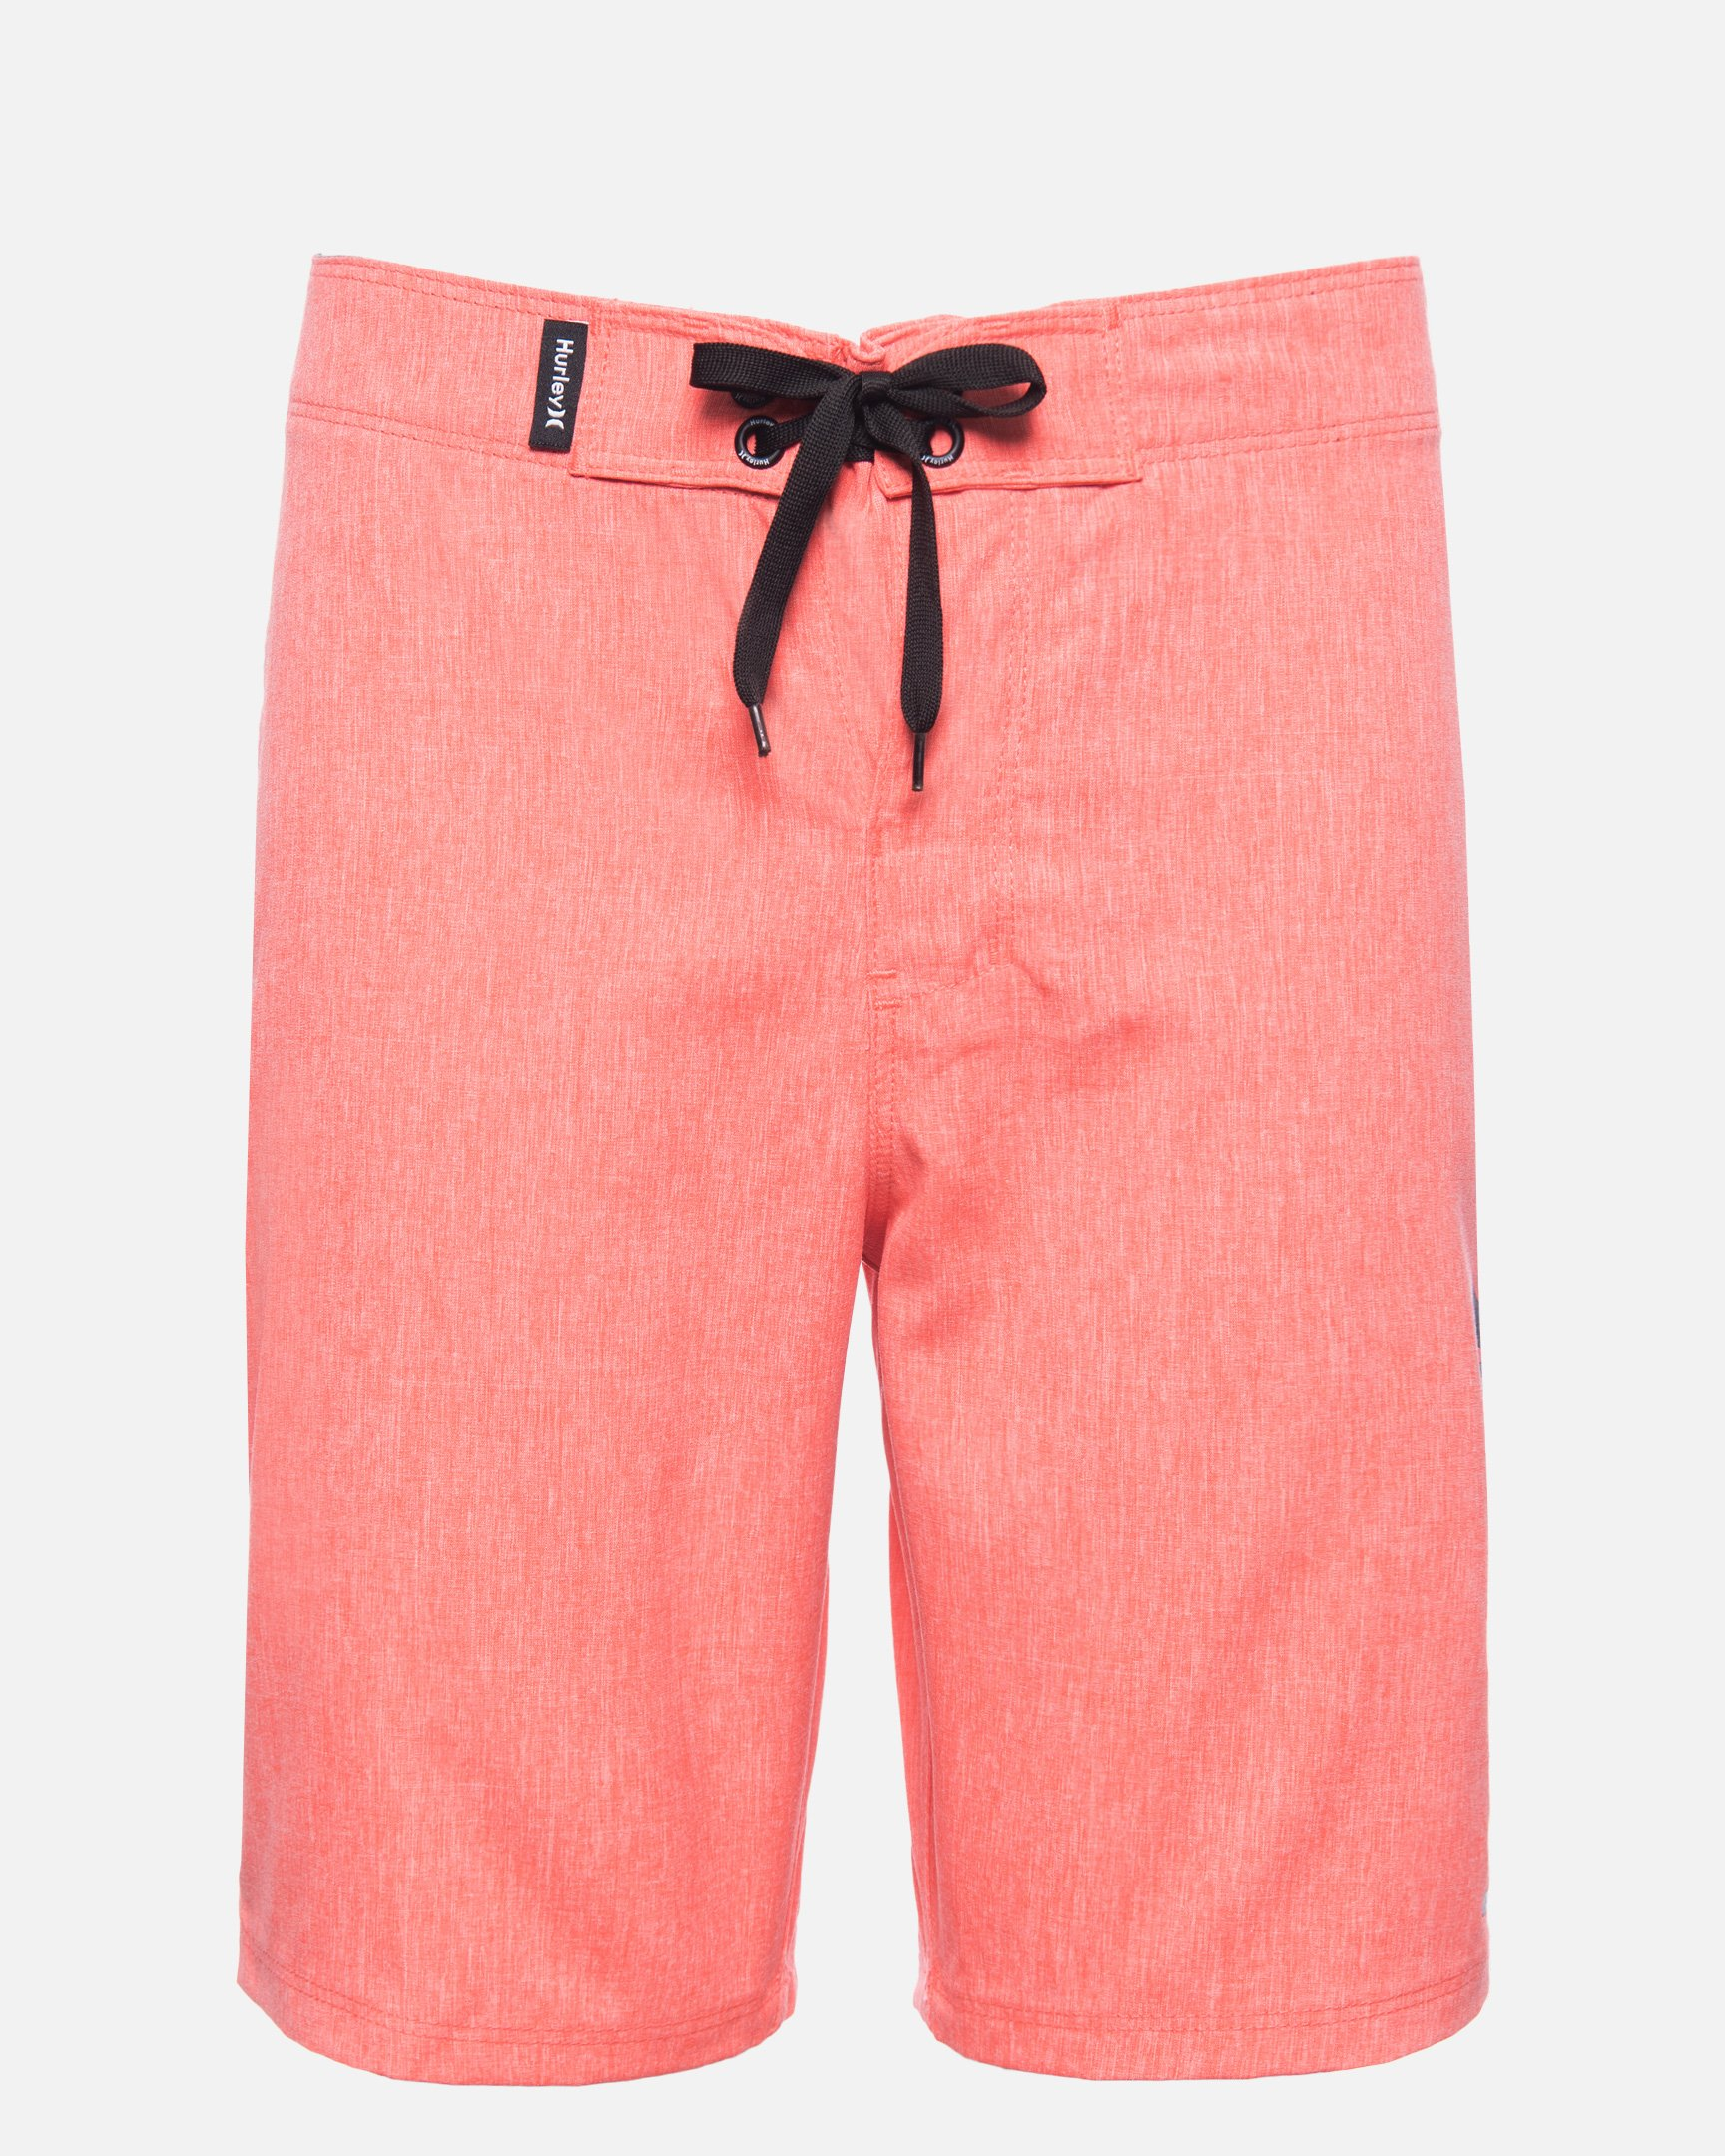 Boys' Heathered One & Only Boardshort in Bright Crimson, Size 18